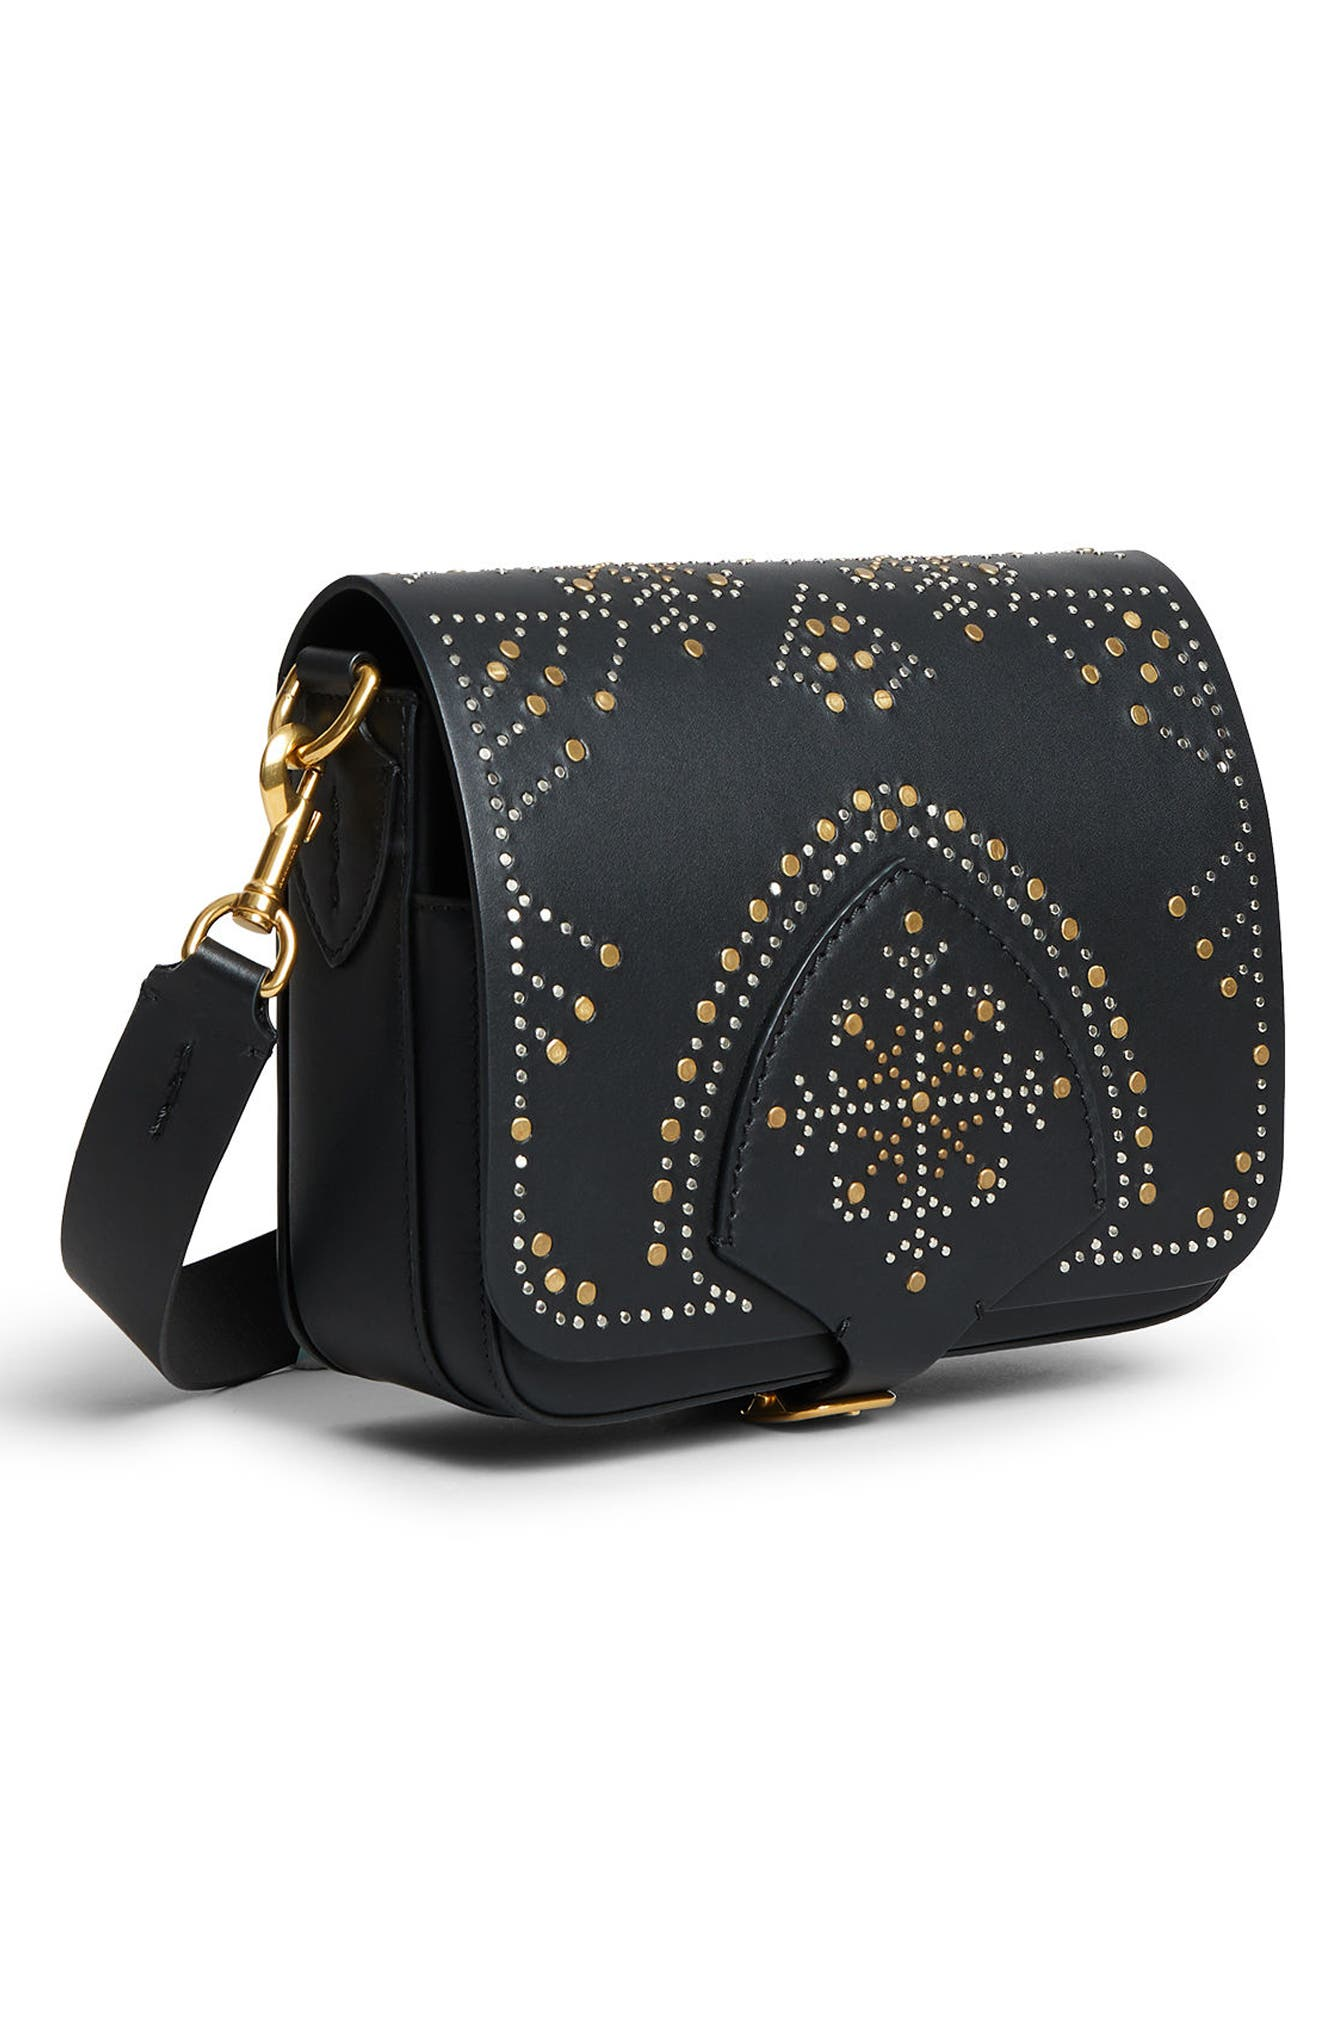 Leather Shoulder Bag,                             Alternate thumbnail 9, color,                             BLACK